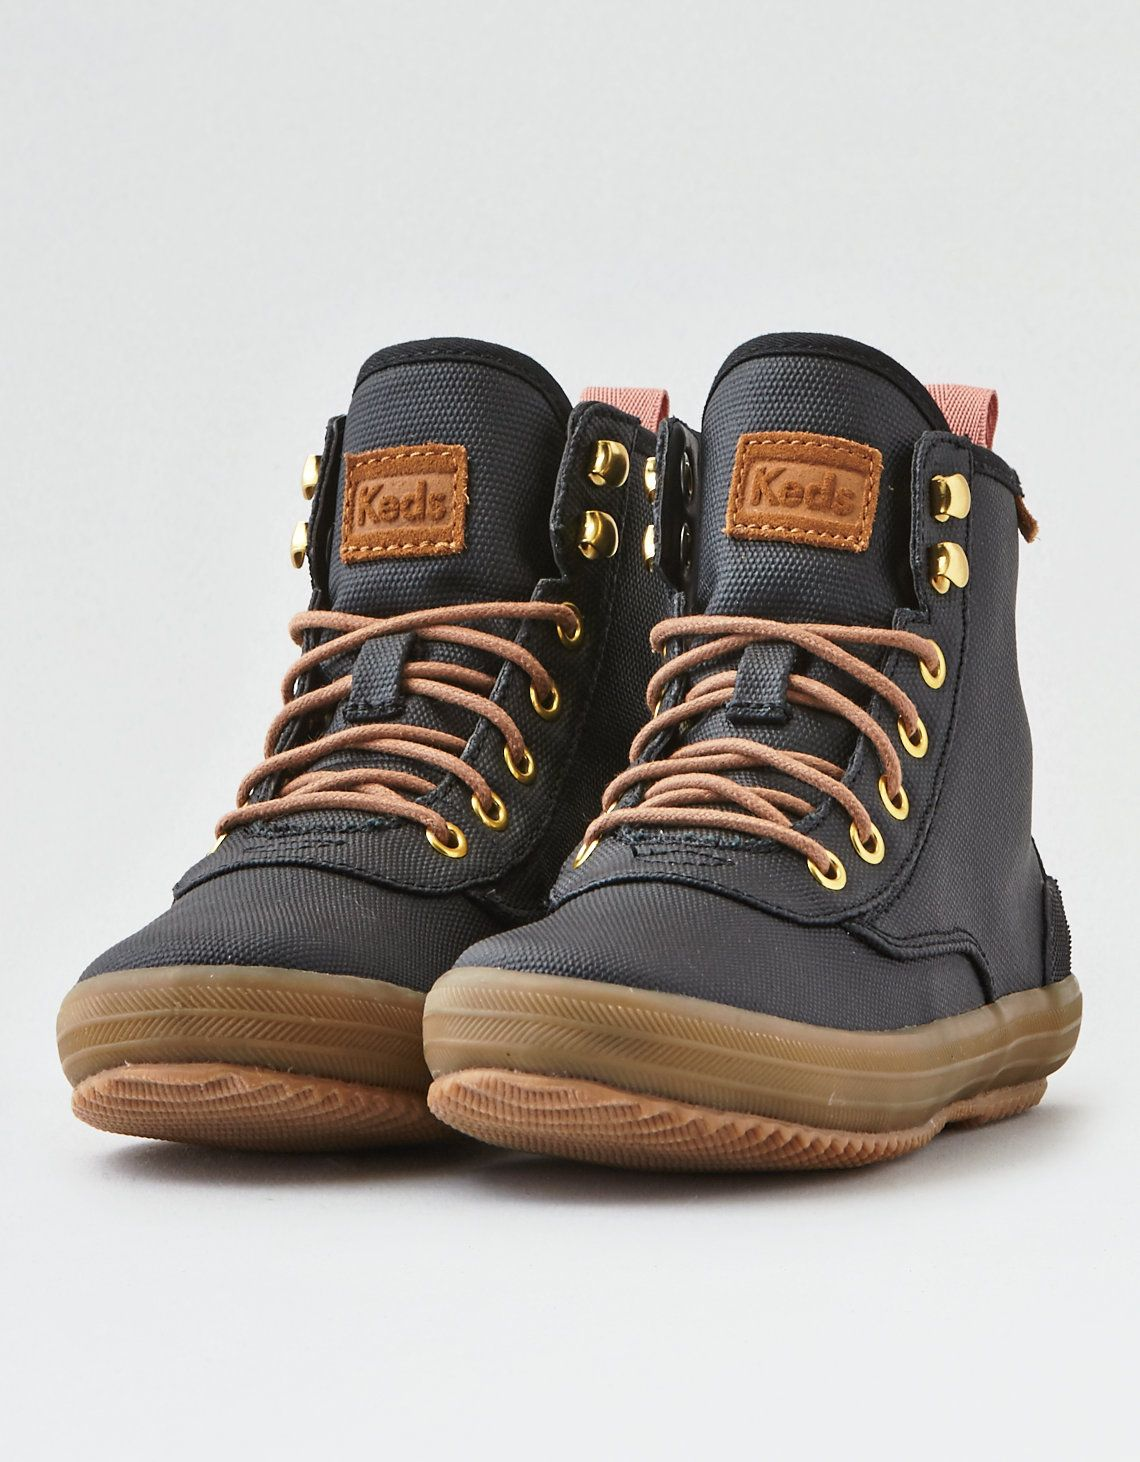 Boots, Hiking boots women, Swag shoes